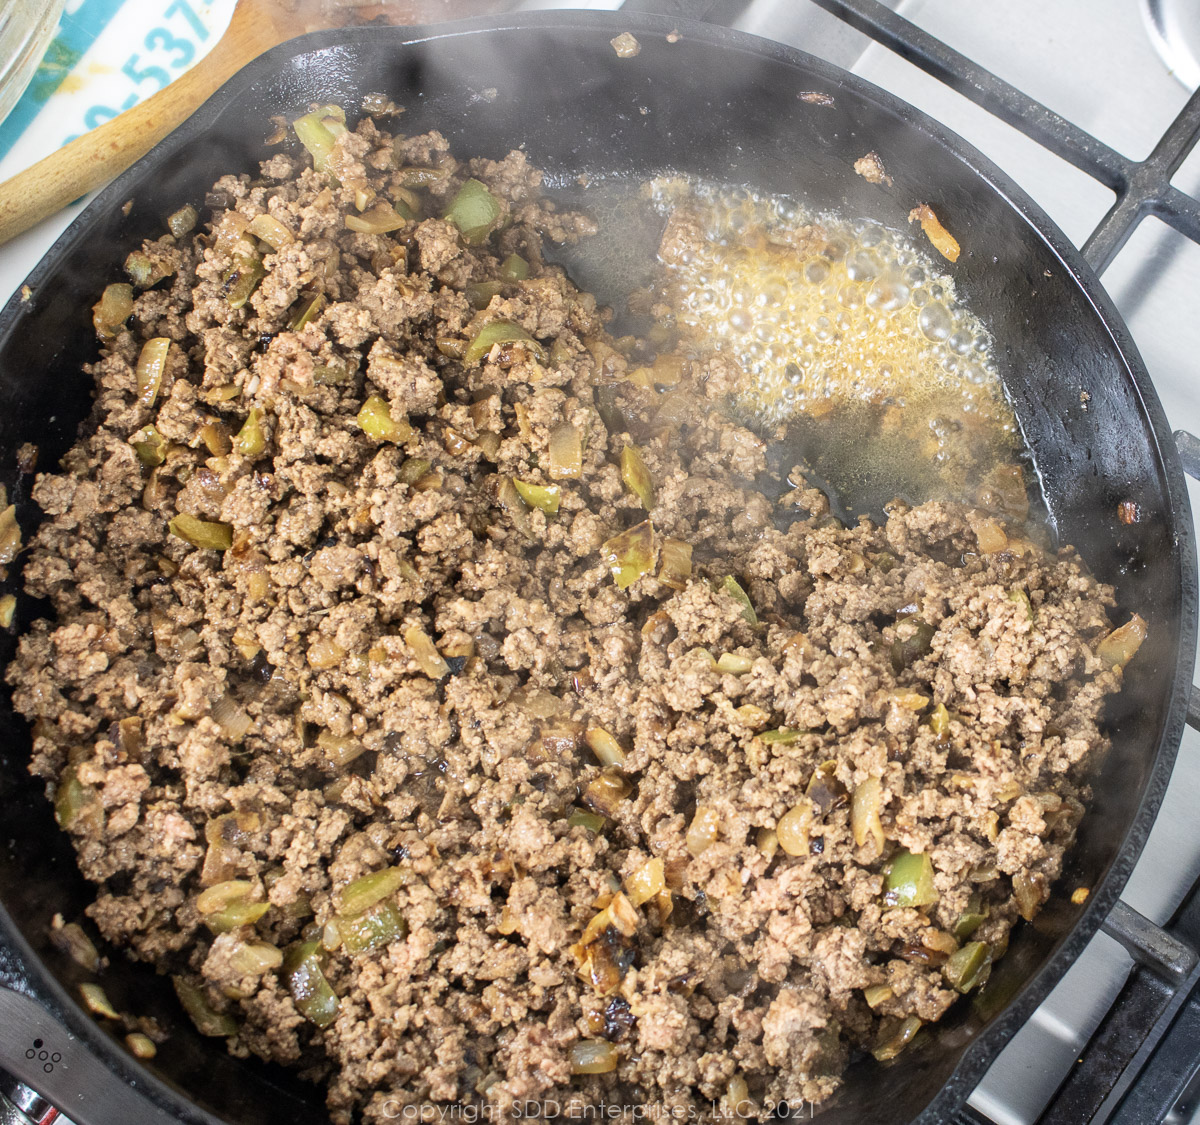 Excess grease from browning ground beef in a cast iron frying pan